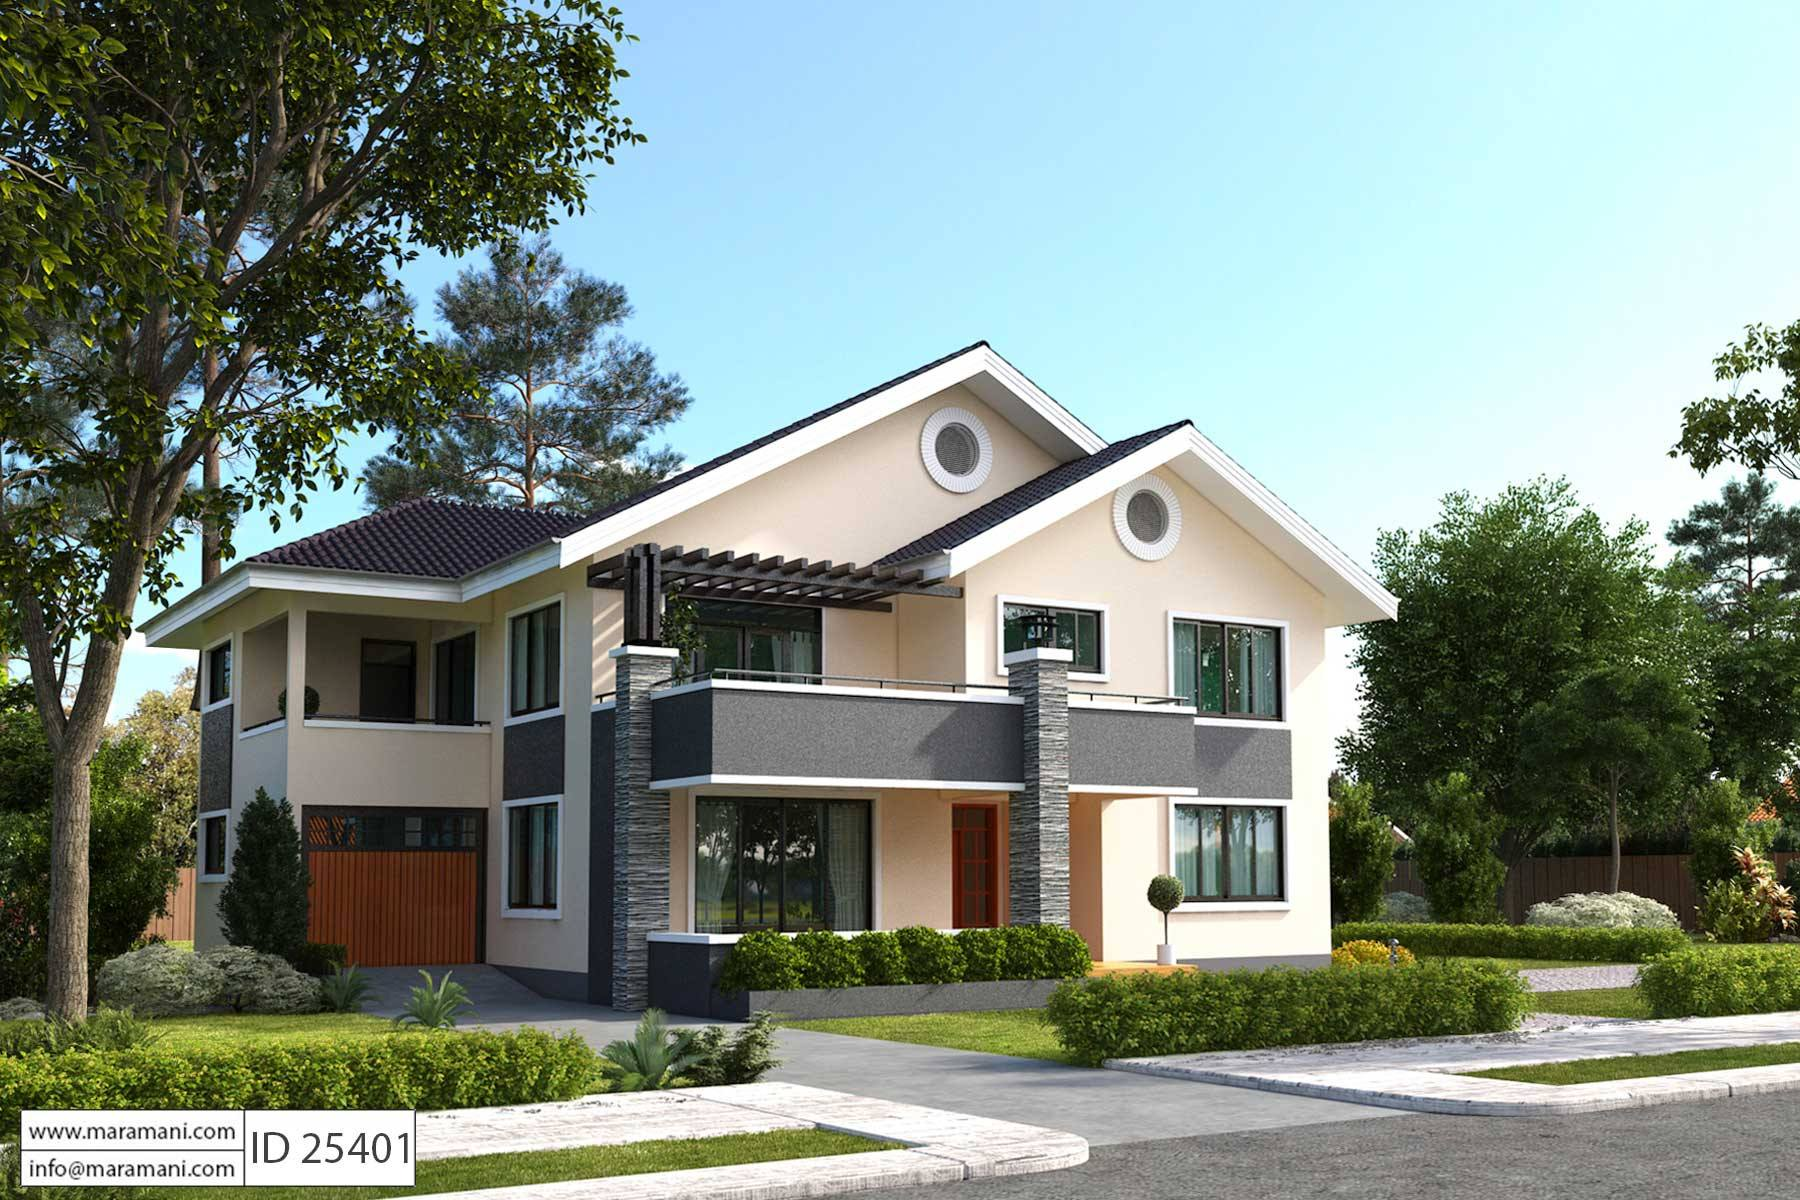 5 bedroom house plan id 25401 floor plans by maramani - Bedroom house designs pictures ...